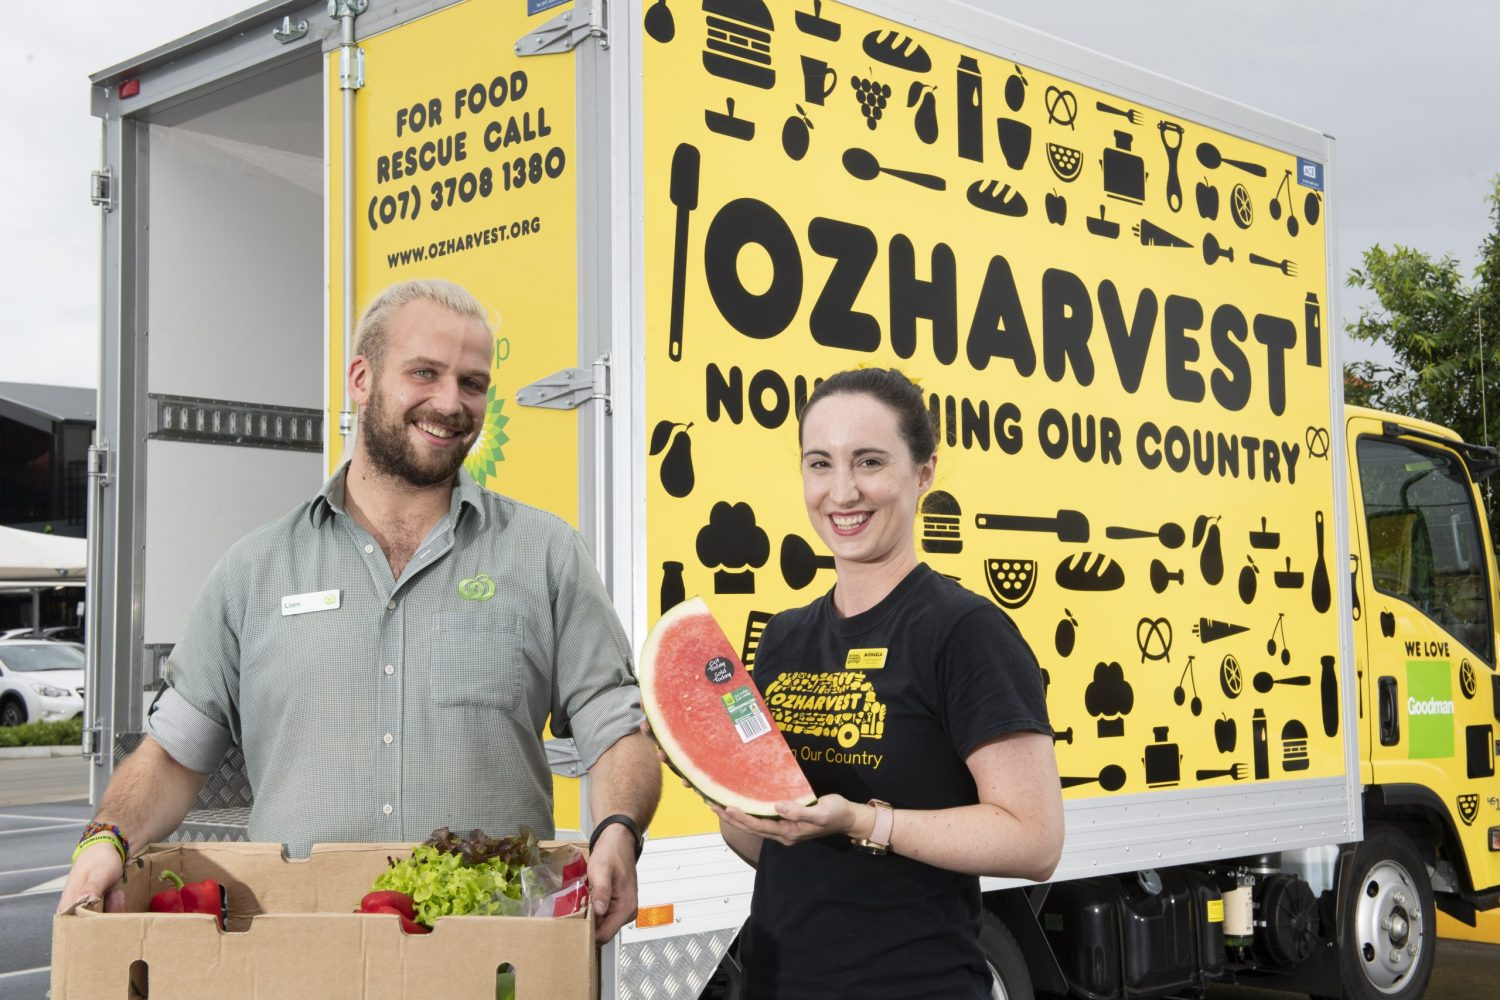 Qld_ozharvest1-scaled-e1606374520297